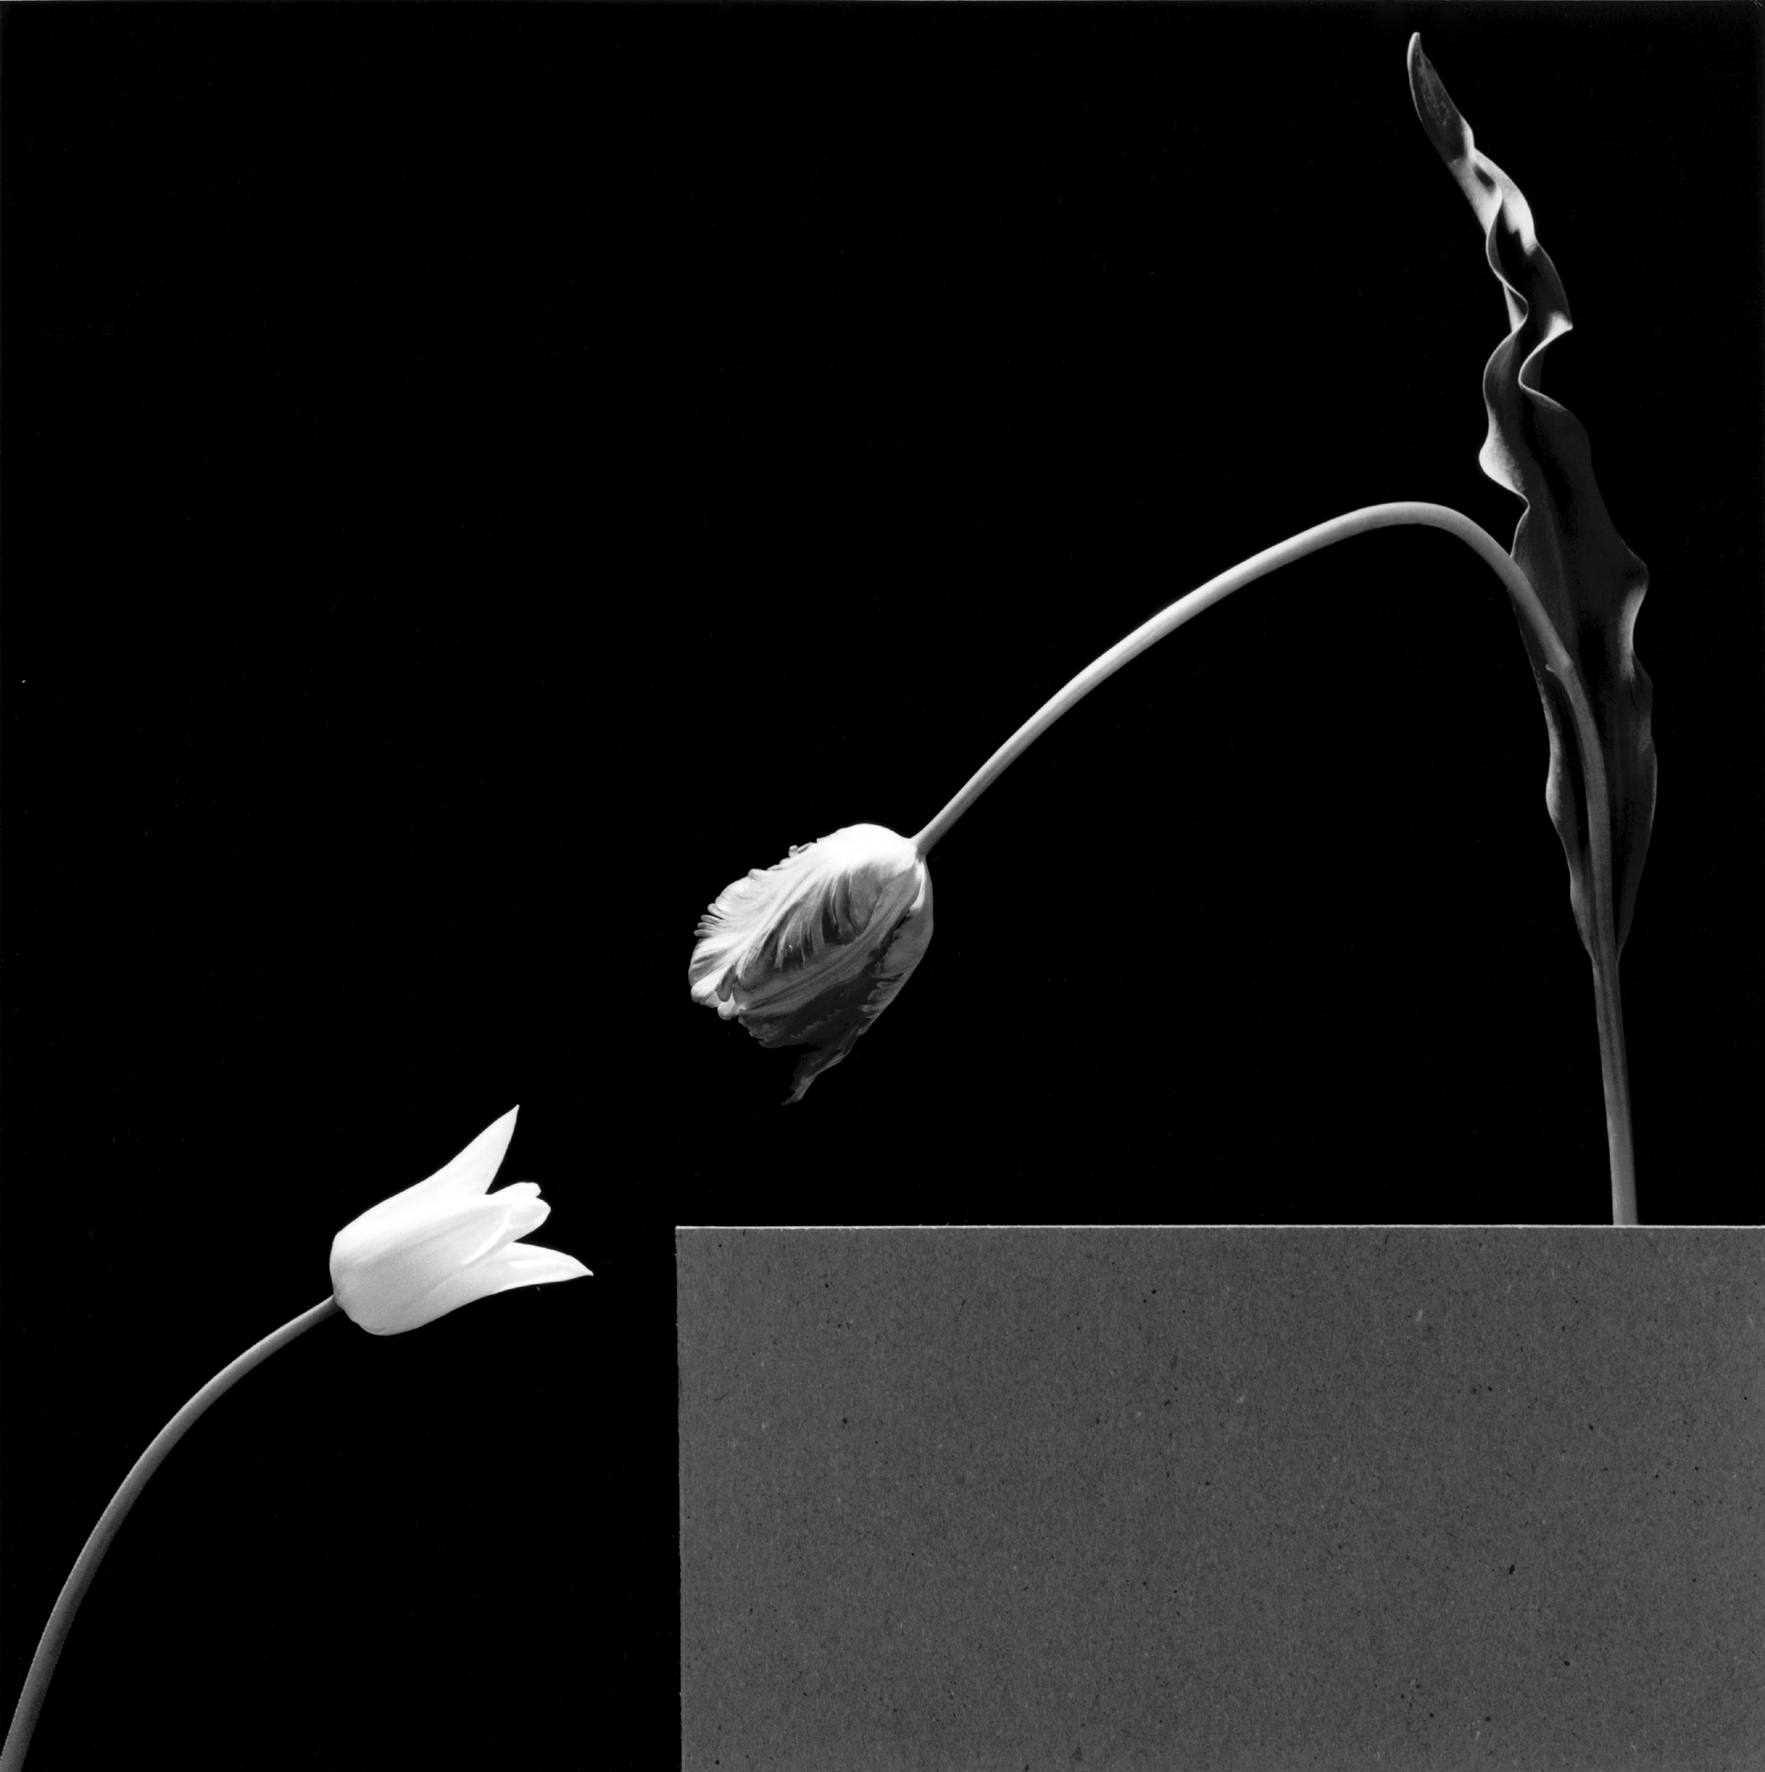 Robert Mapplethorpe - Due tulipani - 1984